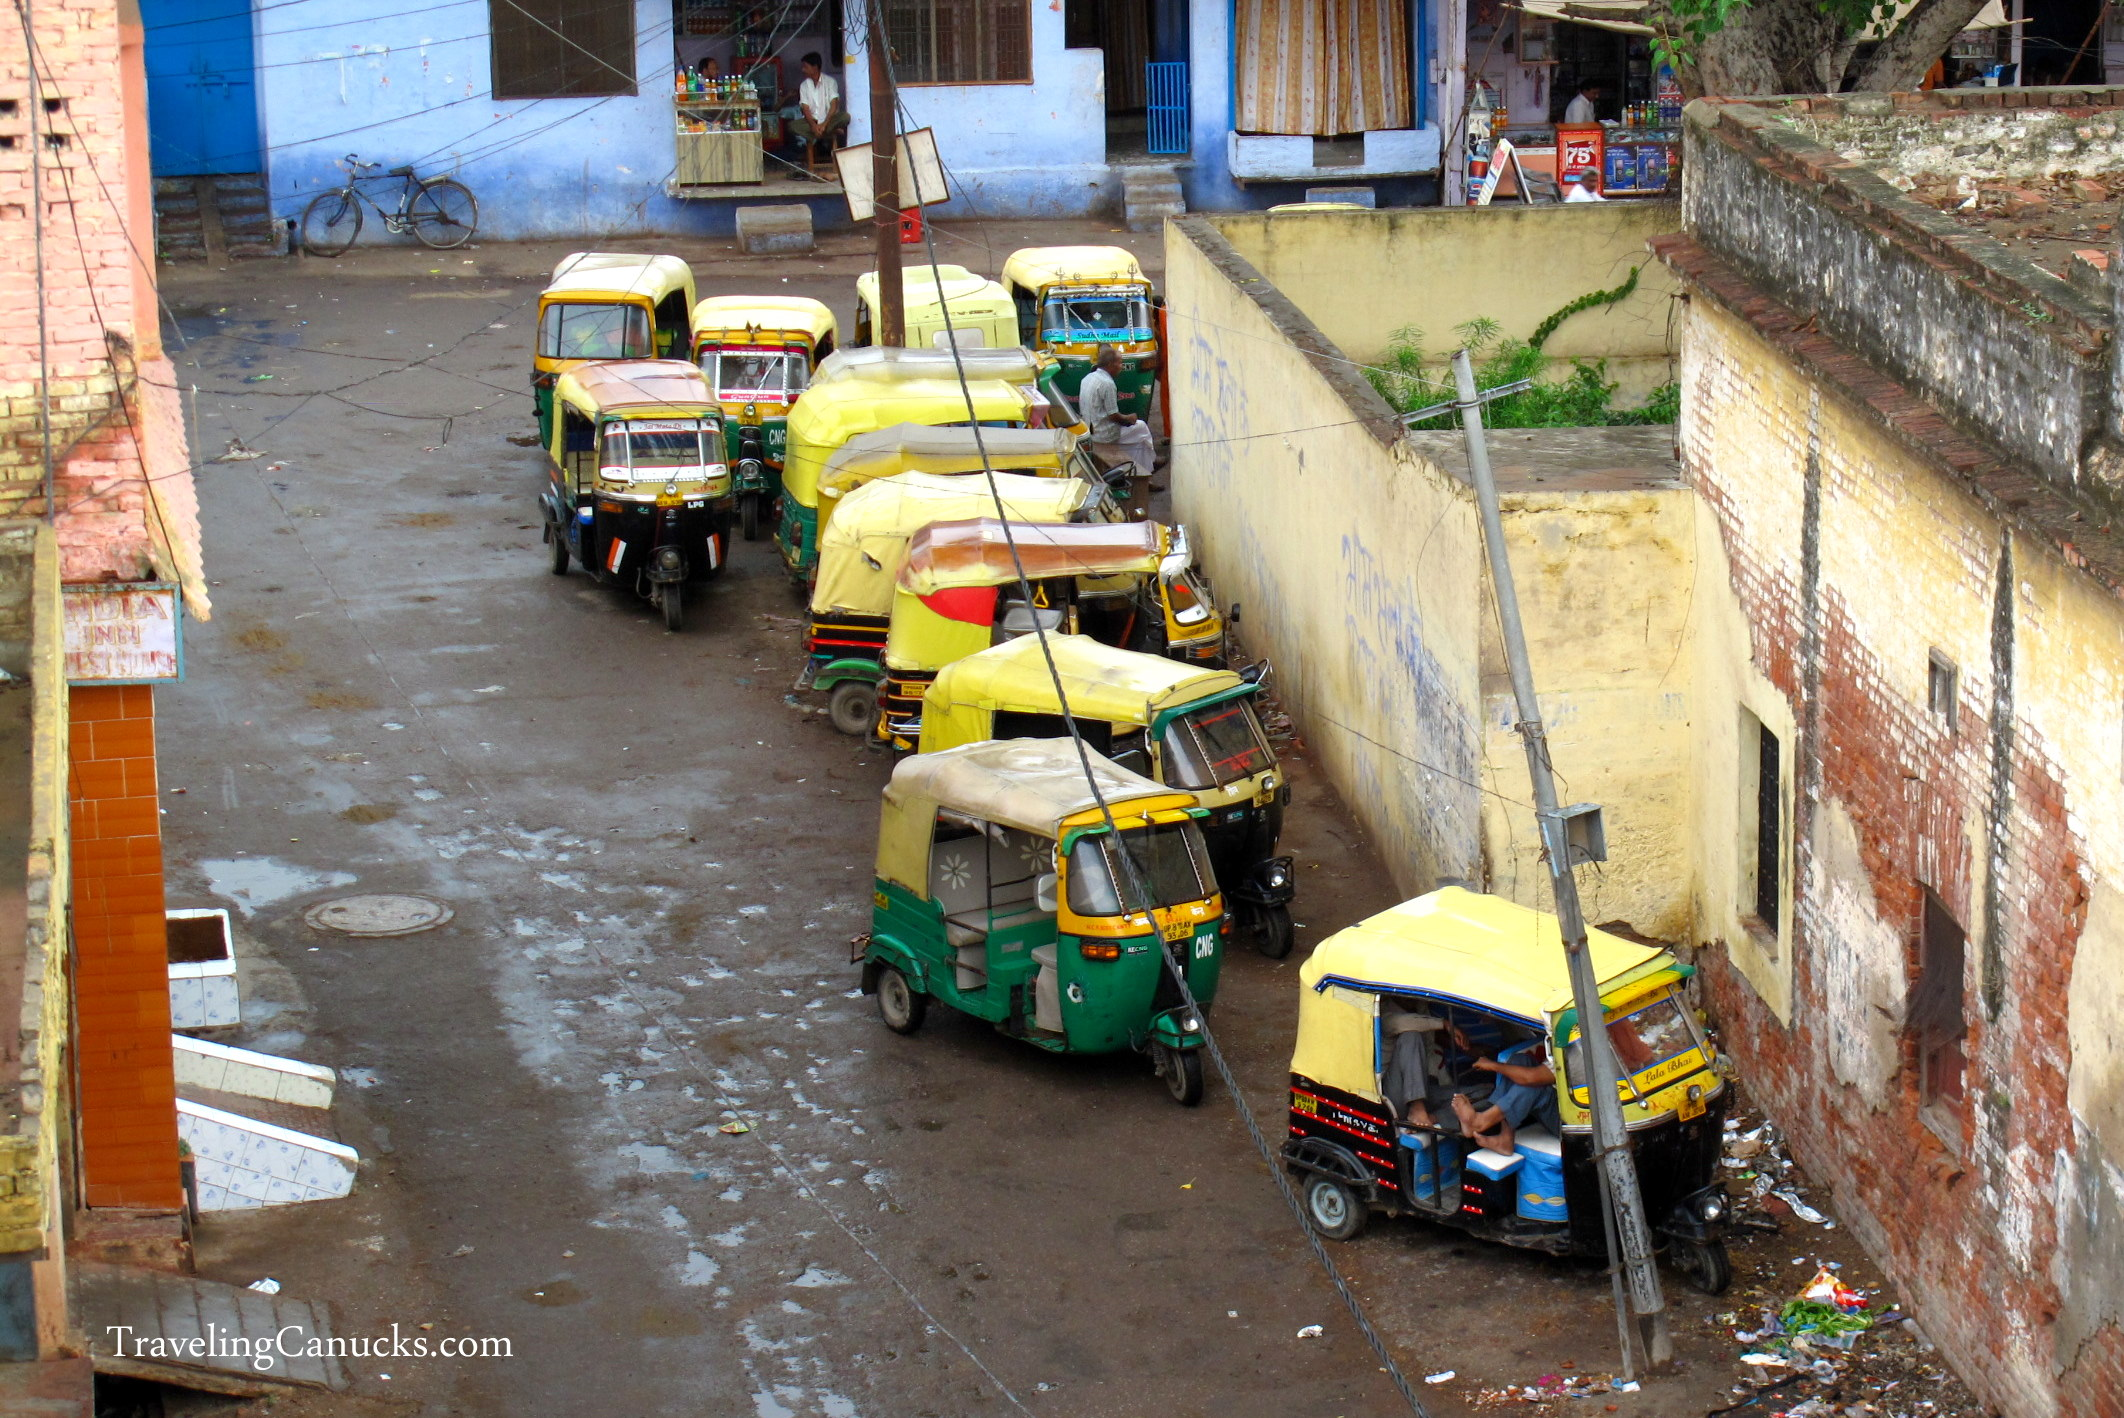 Transportation in India: What the Tuk-tuk?!